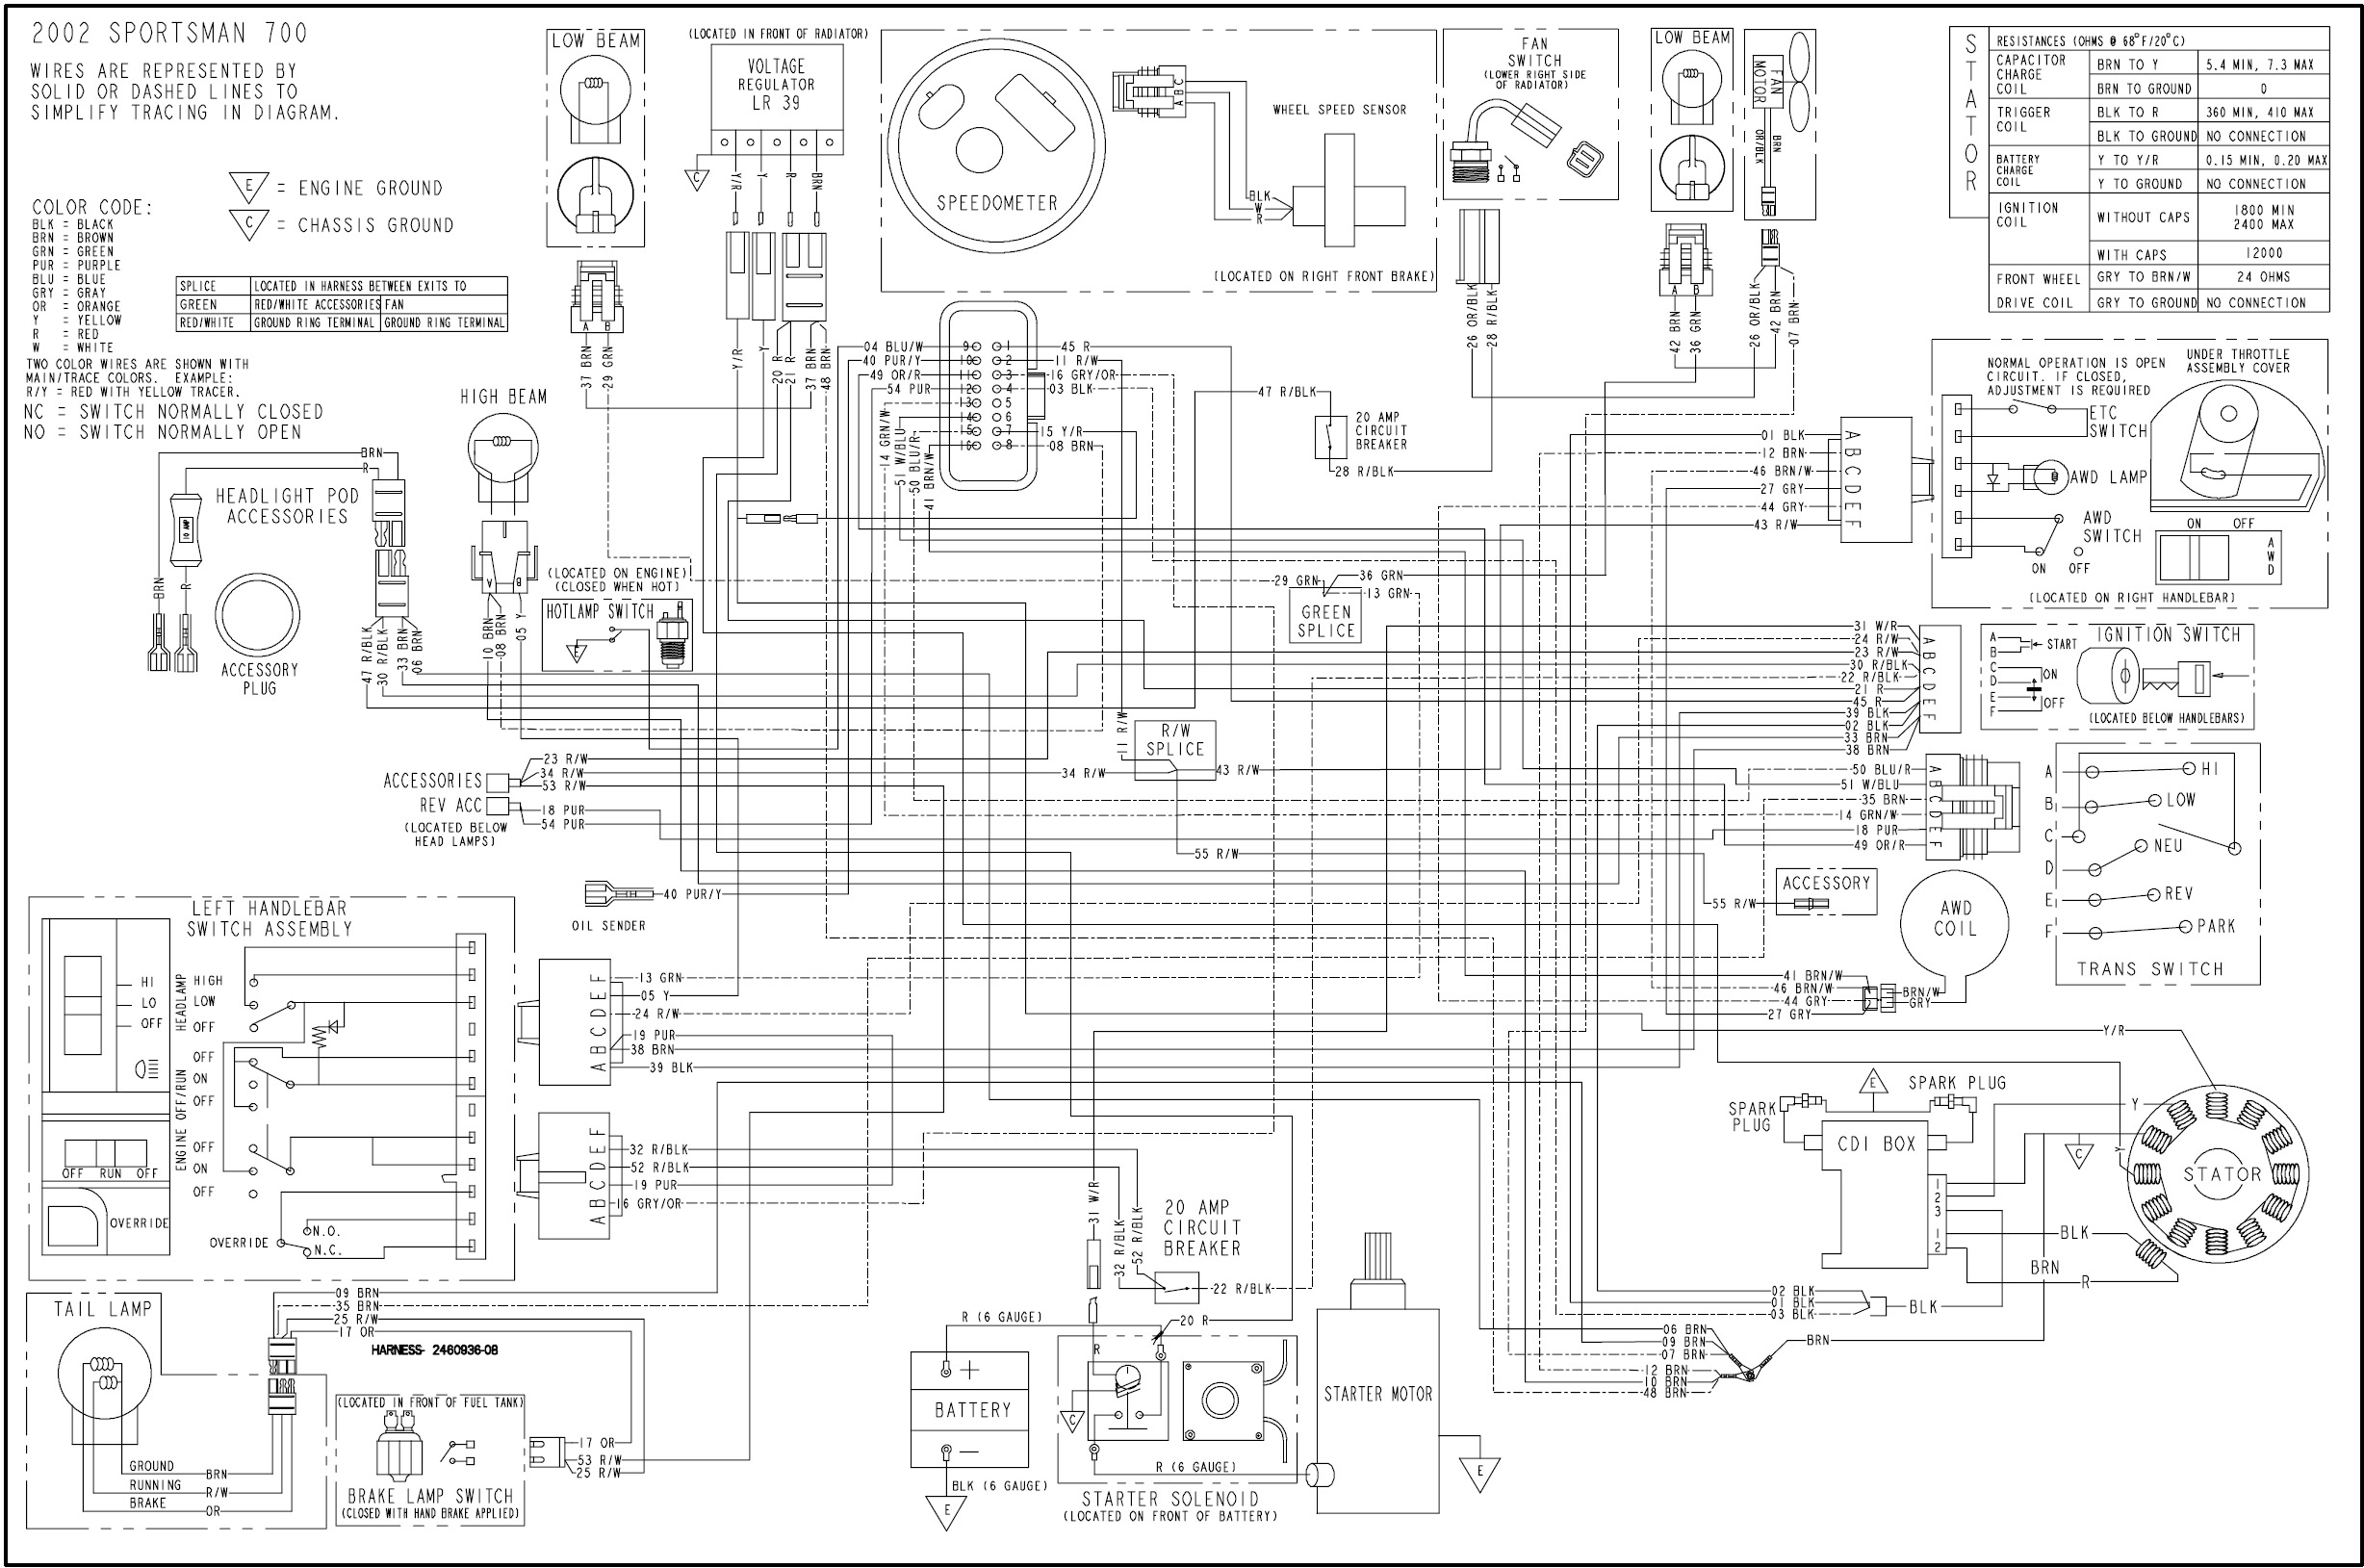 75754d1491234477 2001 sportsman 700 twin no start 2002_polaris_sportsman_700_wiring_diagram 2014 polaris outlaw 50 wiring diagram efcaviation com polaris sportsman 90 wiring schematic at gsmx.co